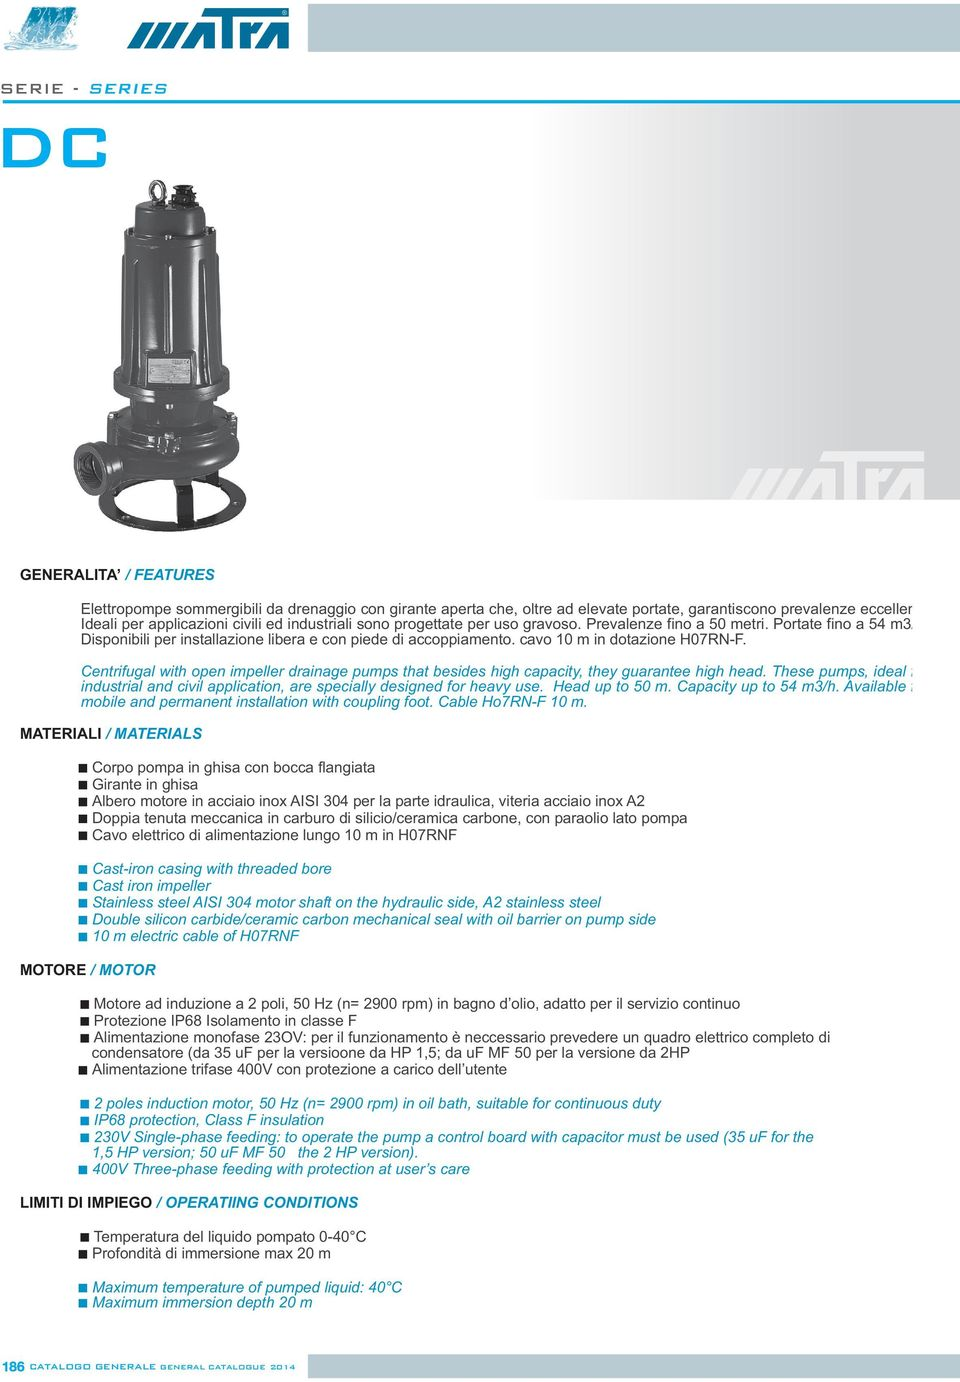 Centrifugal with open impeller drainage pumps that besides high capacity, they guarantee high head. These pumps, ideal f industrial and civil application, are specially designed for heavy use.